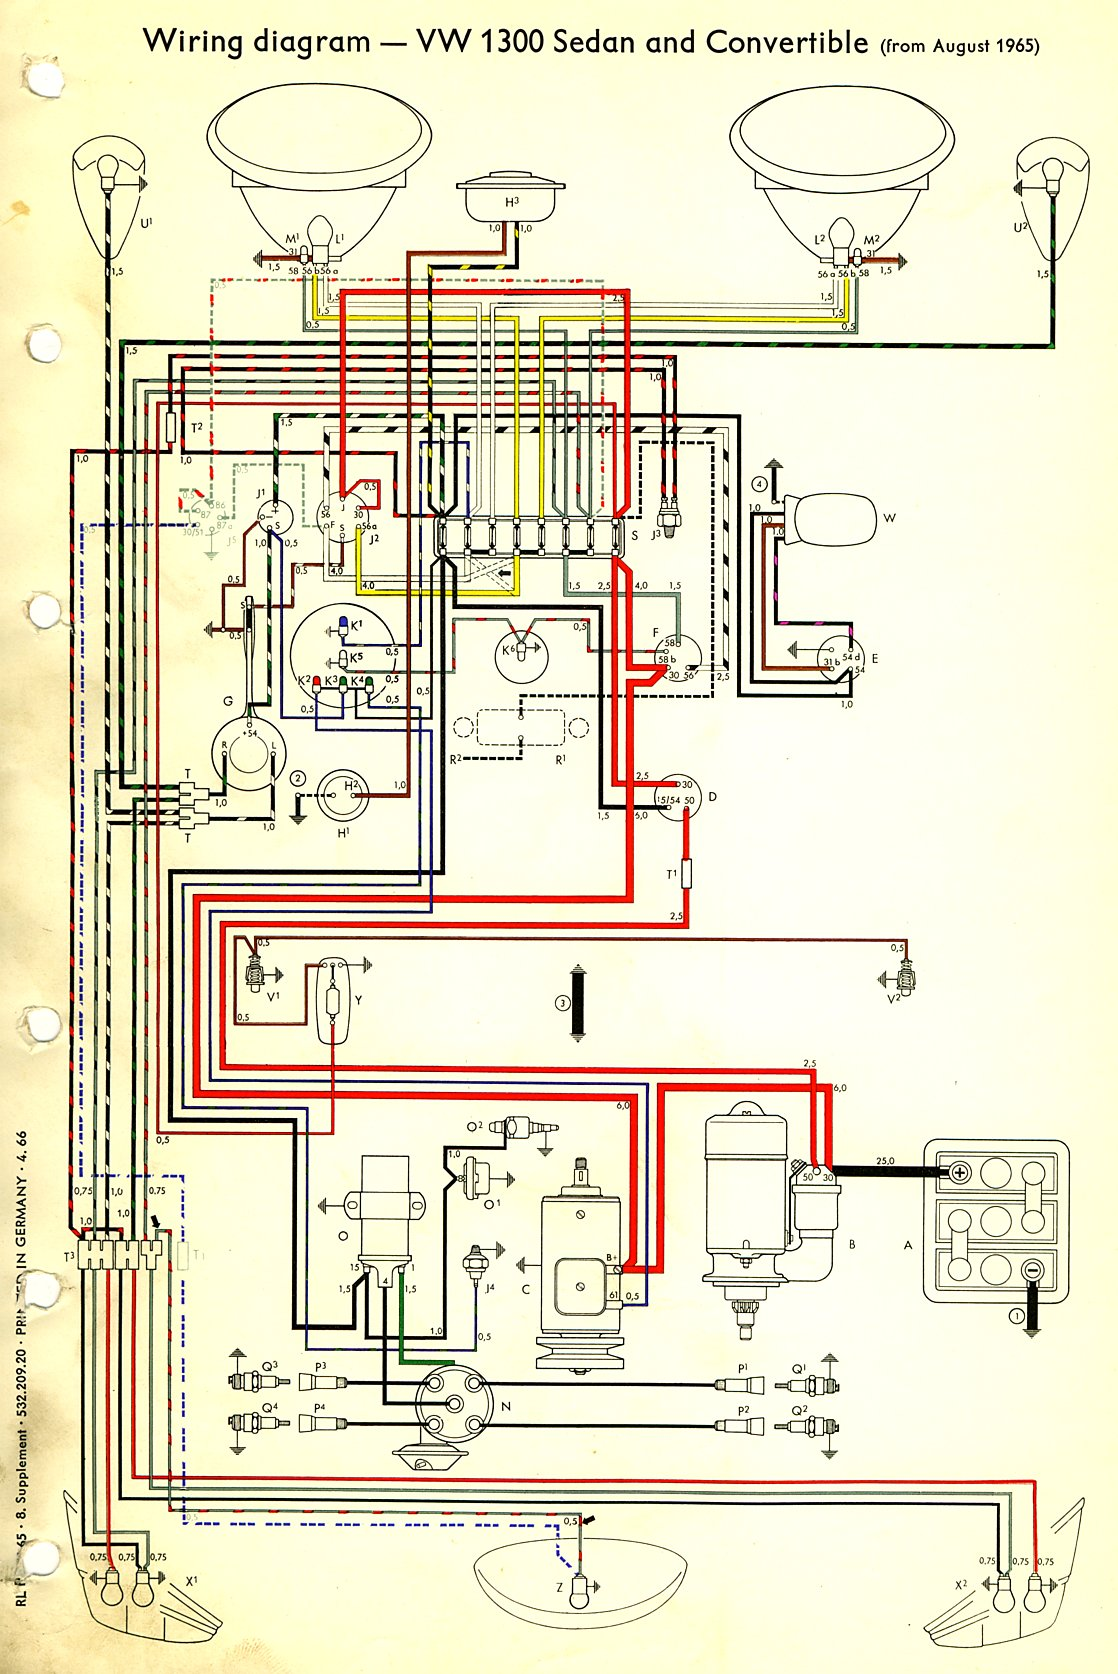 1972 Volkswagen Type 2 Fuse Box Trusted Wiring Diagram Super Beetle 66 Vw Bug Schematics 2002